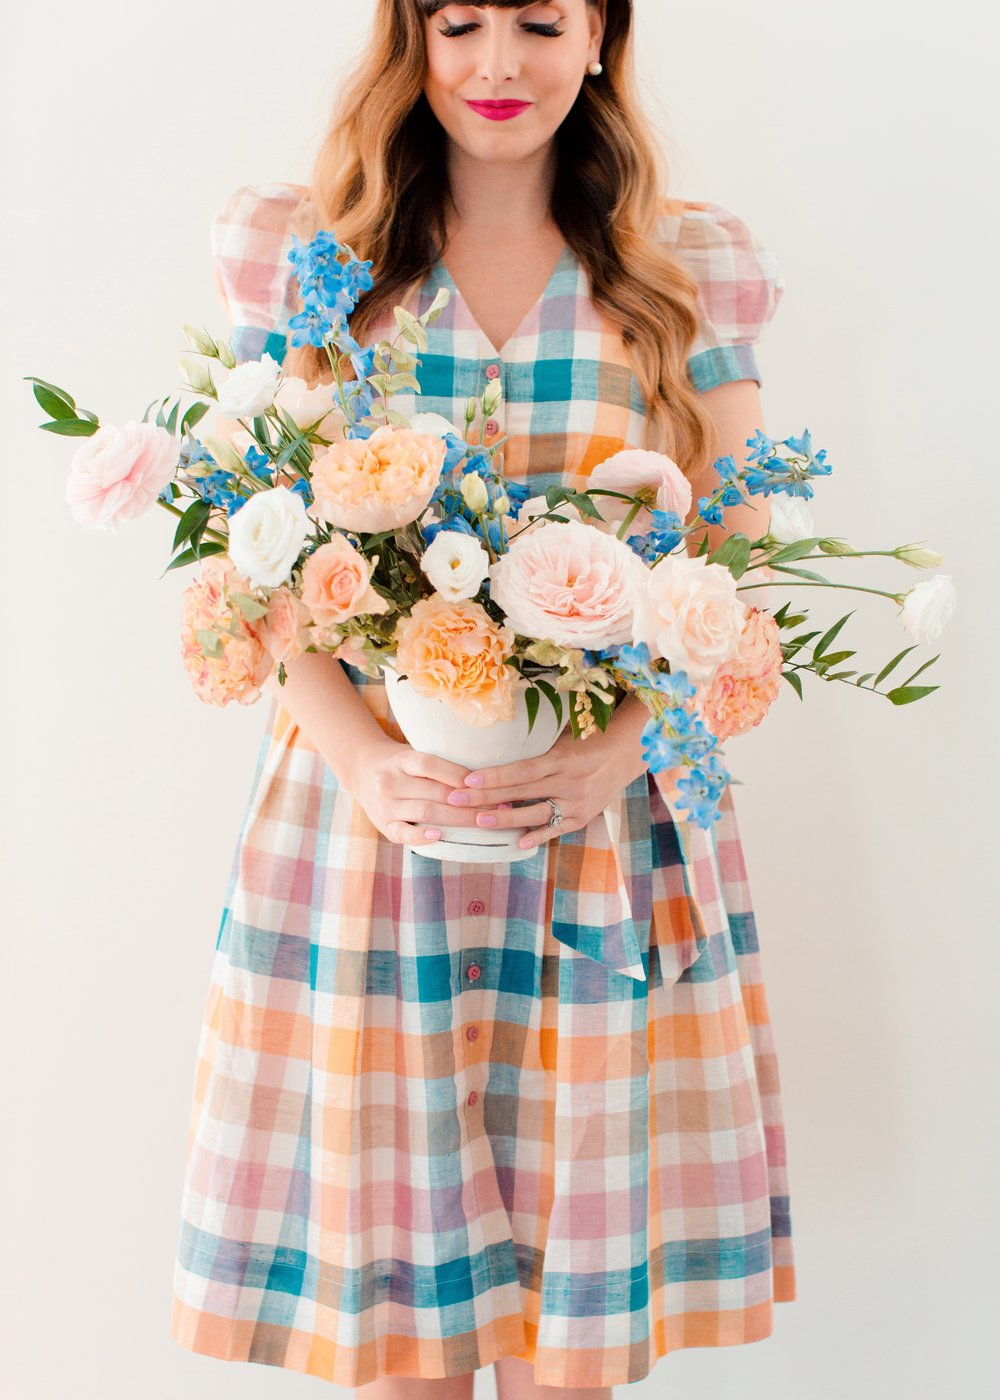 gingham and flowers gal meets glam dress.JPG